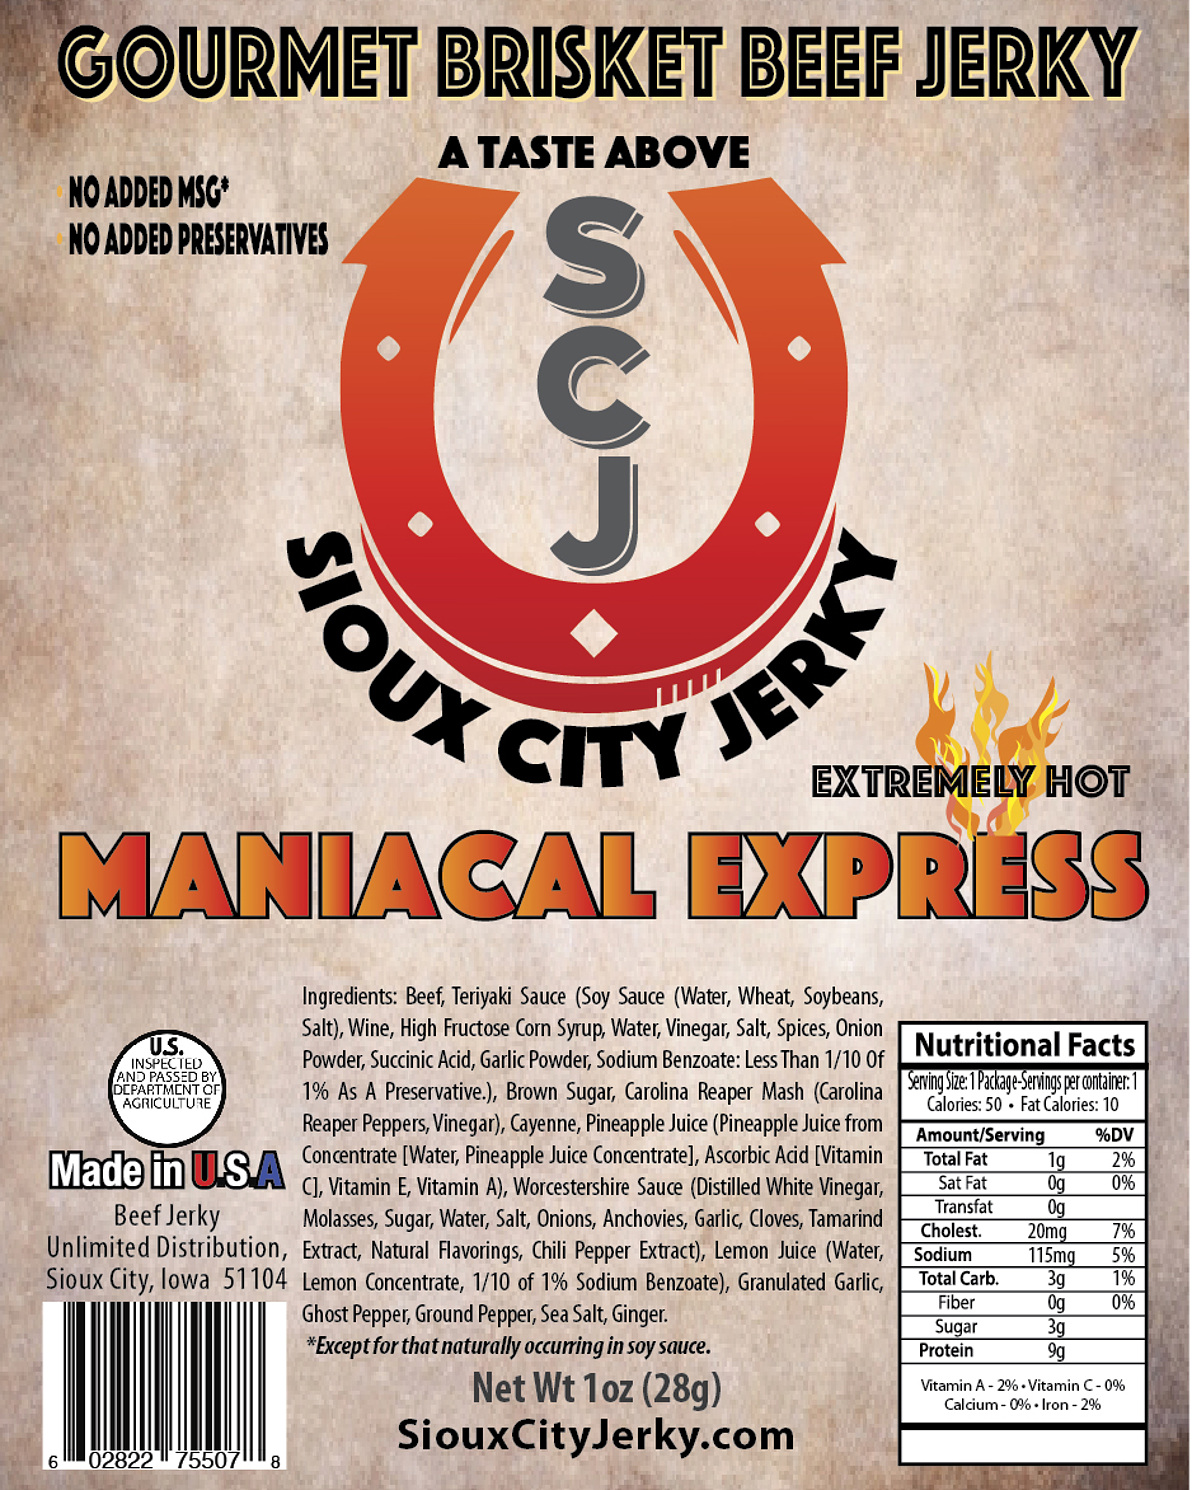 Maniacal Express Beef Jerky